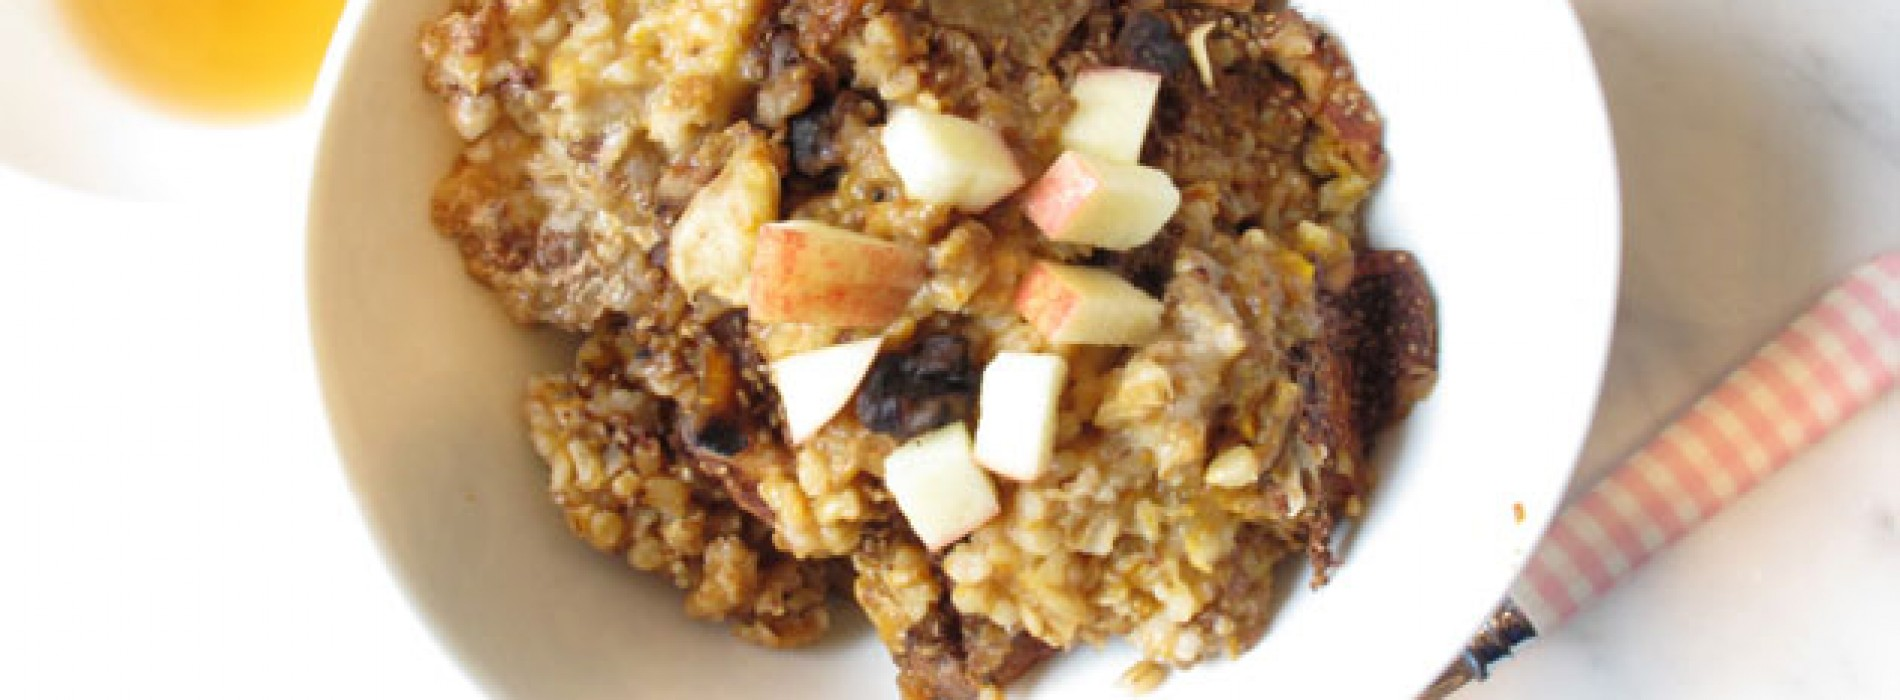 Pumpkin and Spiced Apple Slow Cooked Oats